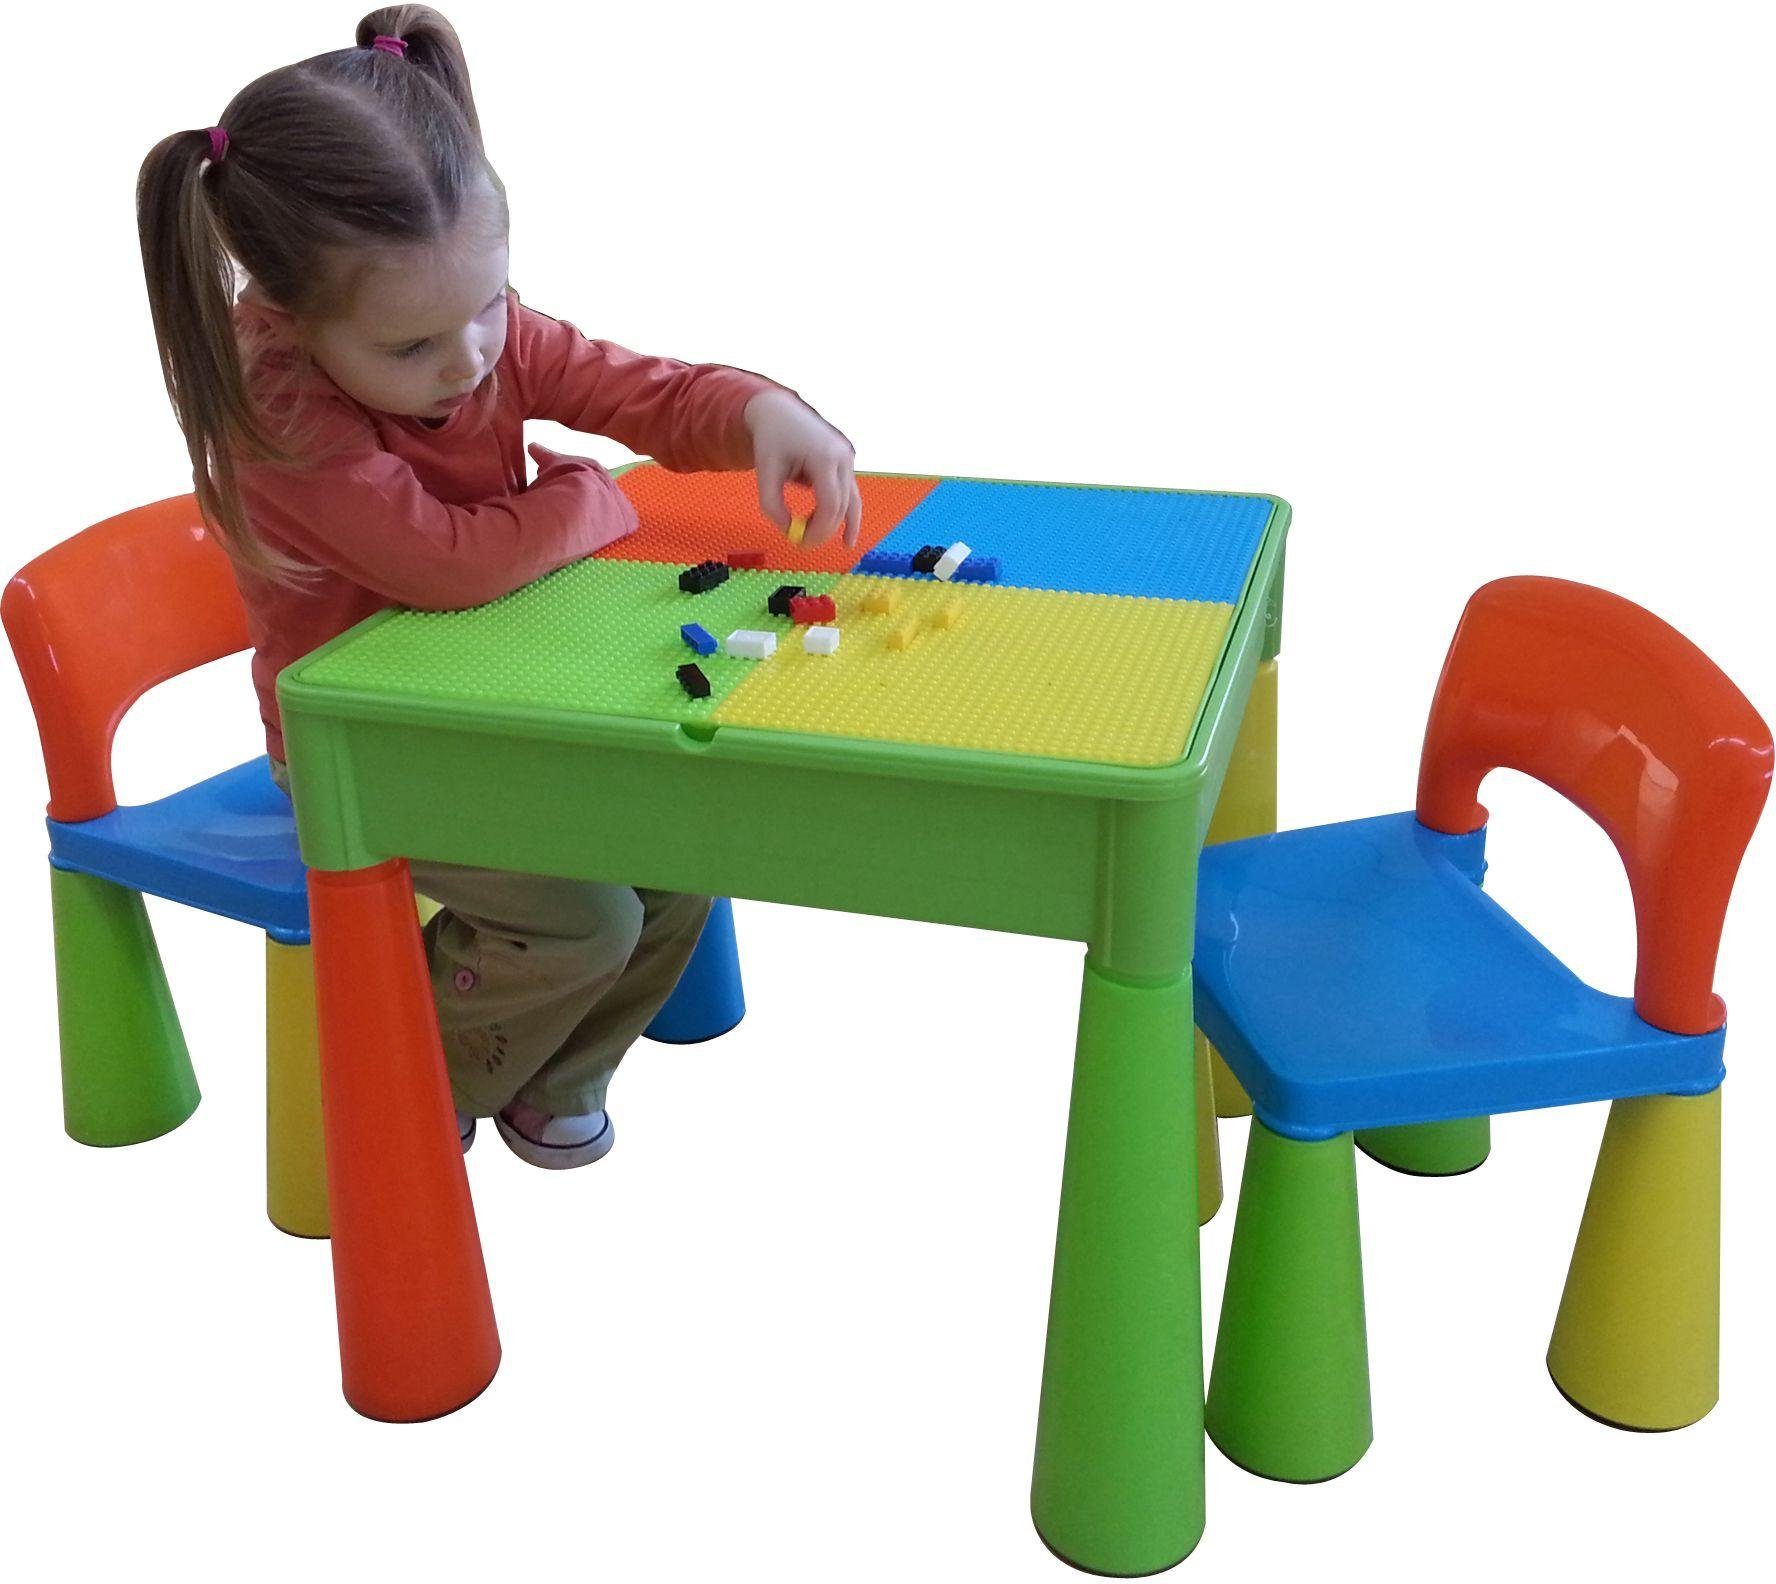 toys r us lego table and chairs wood rocking chair styles sale on 5 in 1 writing top sand